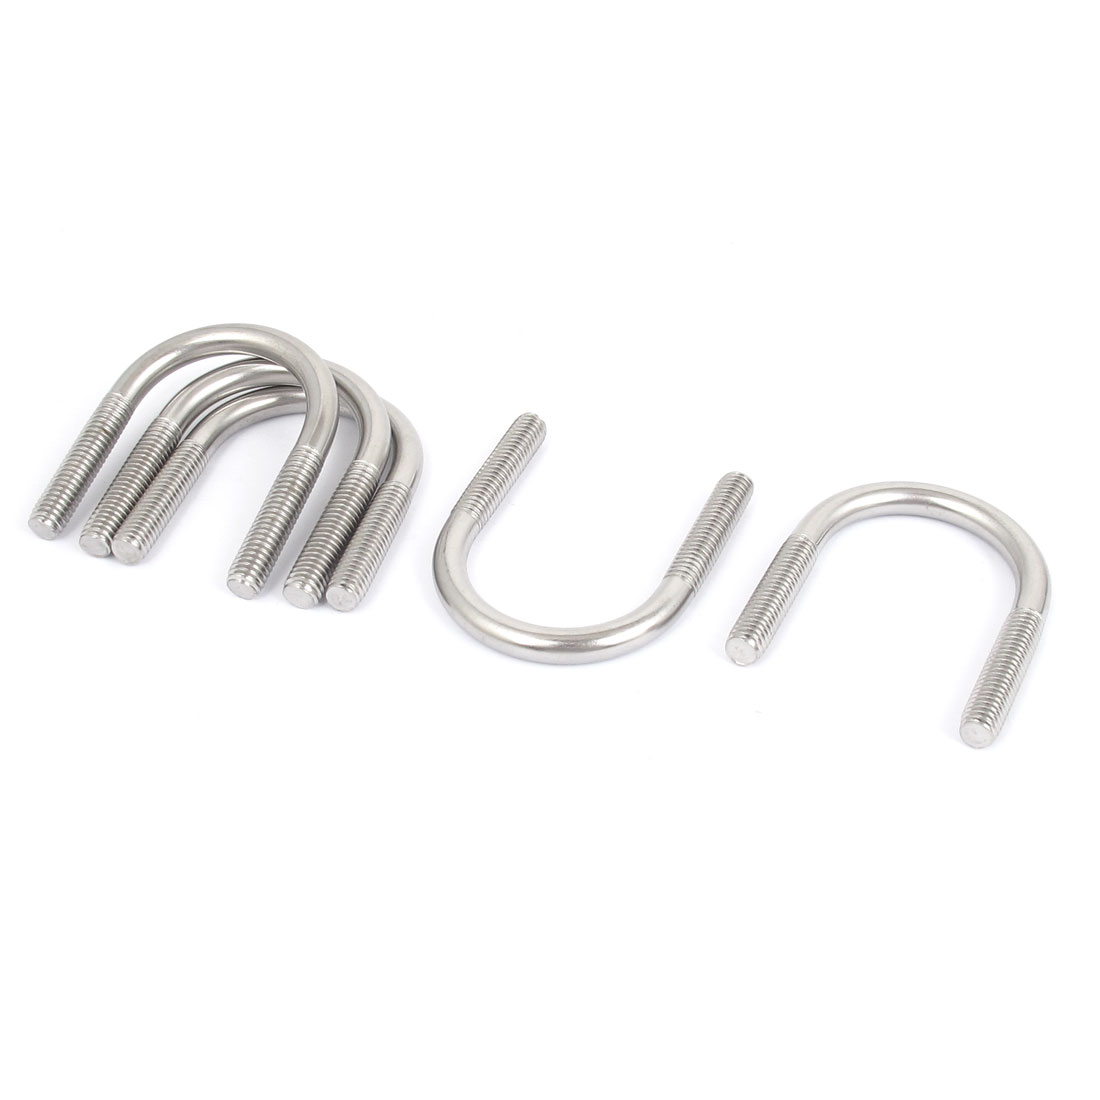 M6 304 Stainless Steel Round Bend U-Bolt Fastener 5pcs for 27mm Pipe Diameter